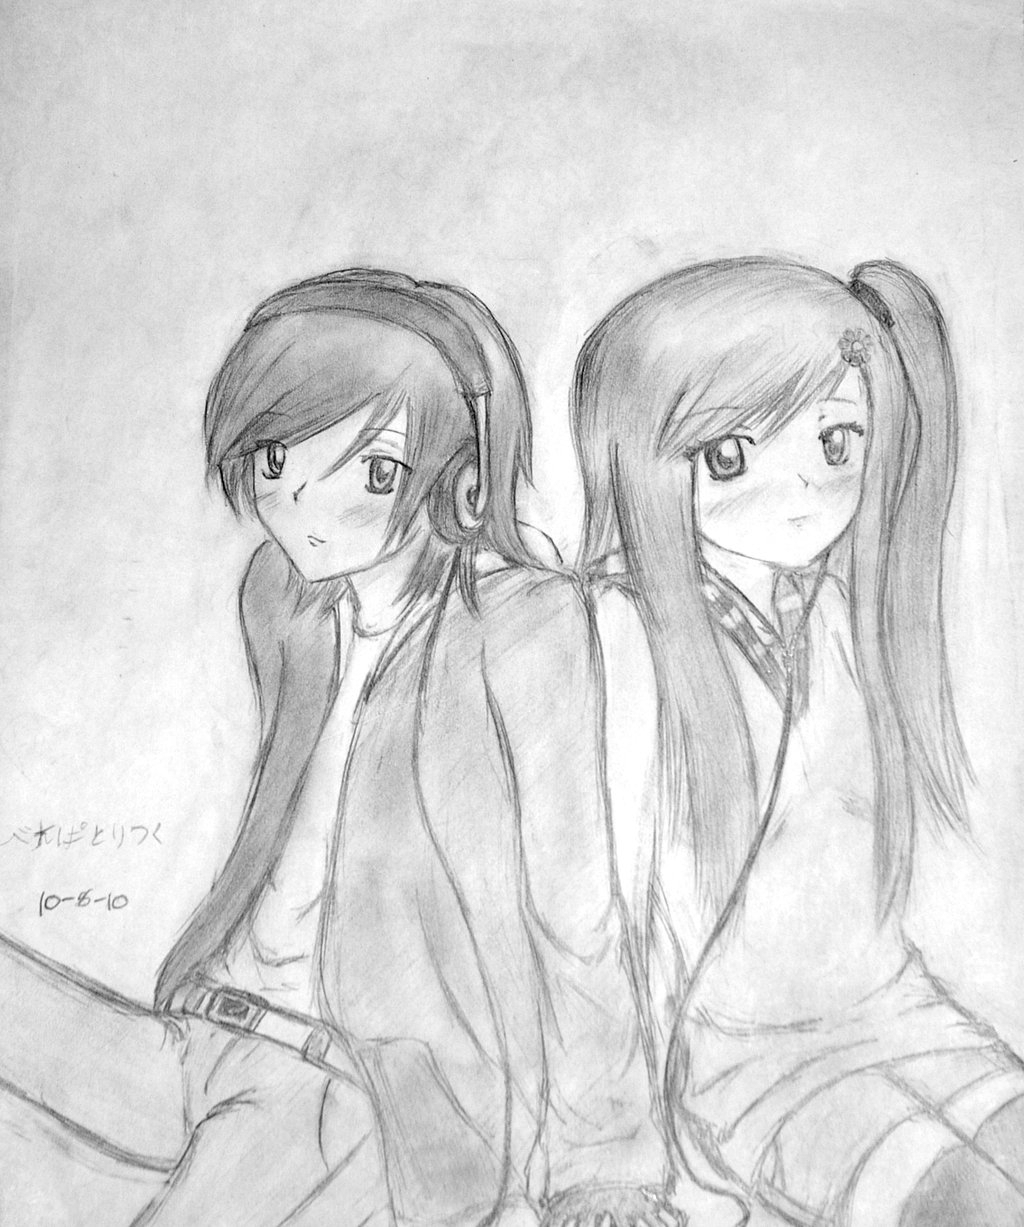 Cute Anime Drawing Ideas At Getdrawings Com Free For Personal Use